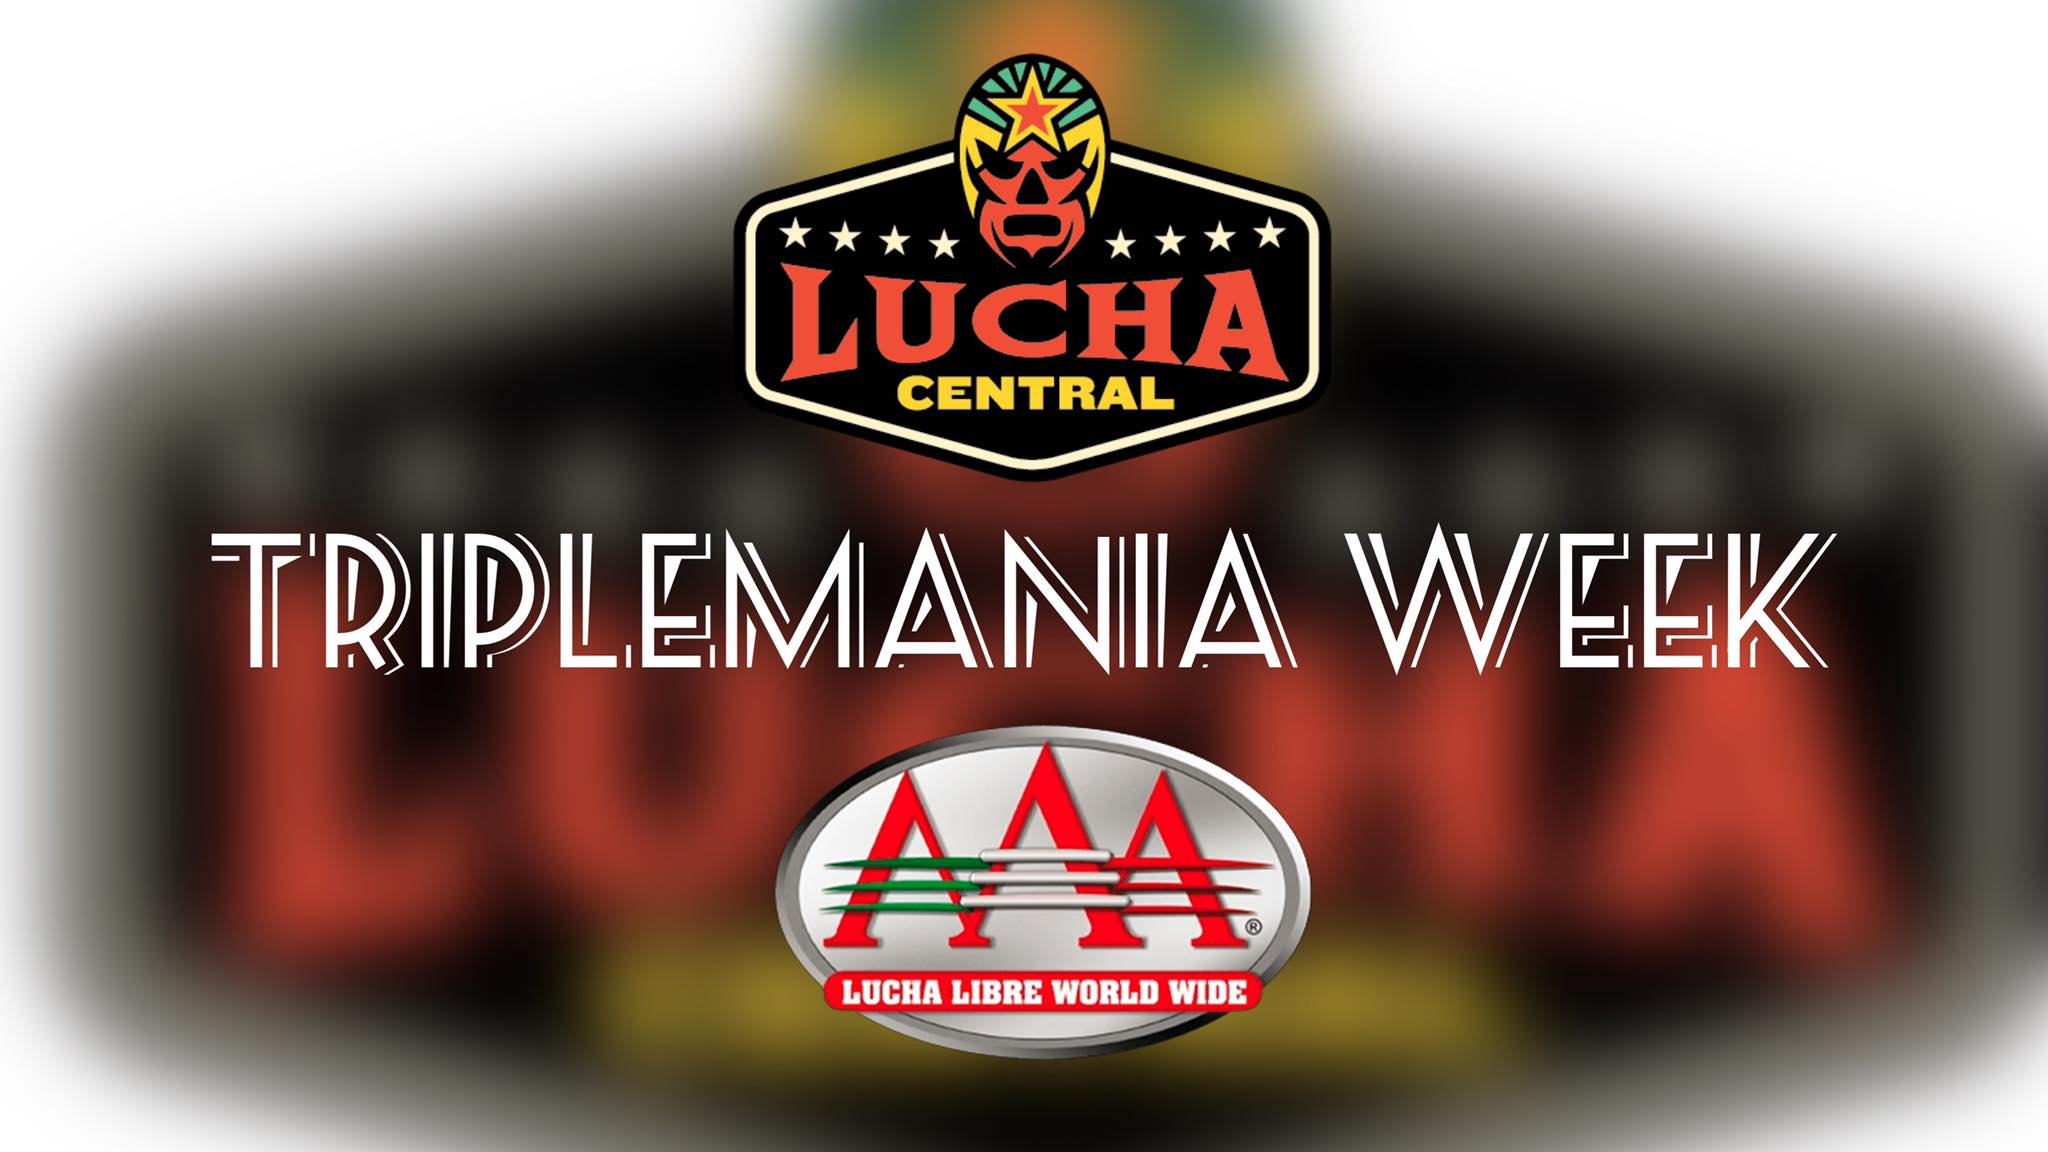 Triplemania Week History of Triplemania Part 50 — Lucha Central